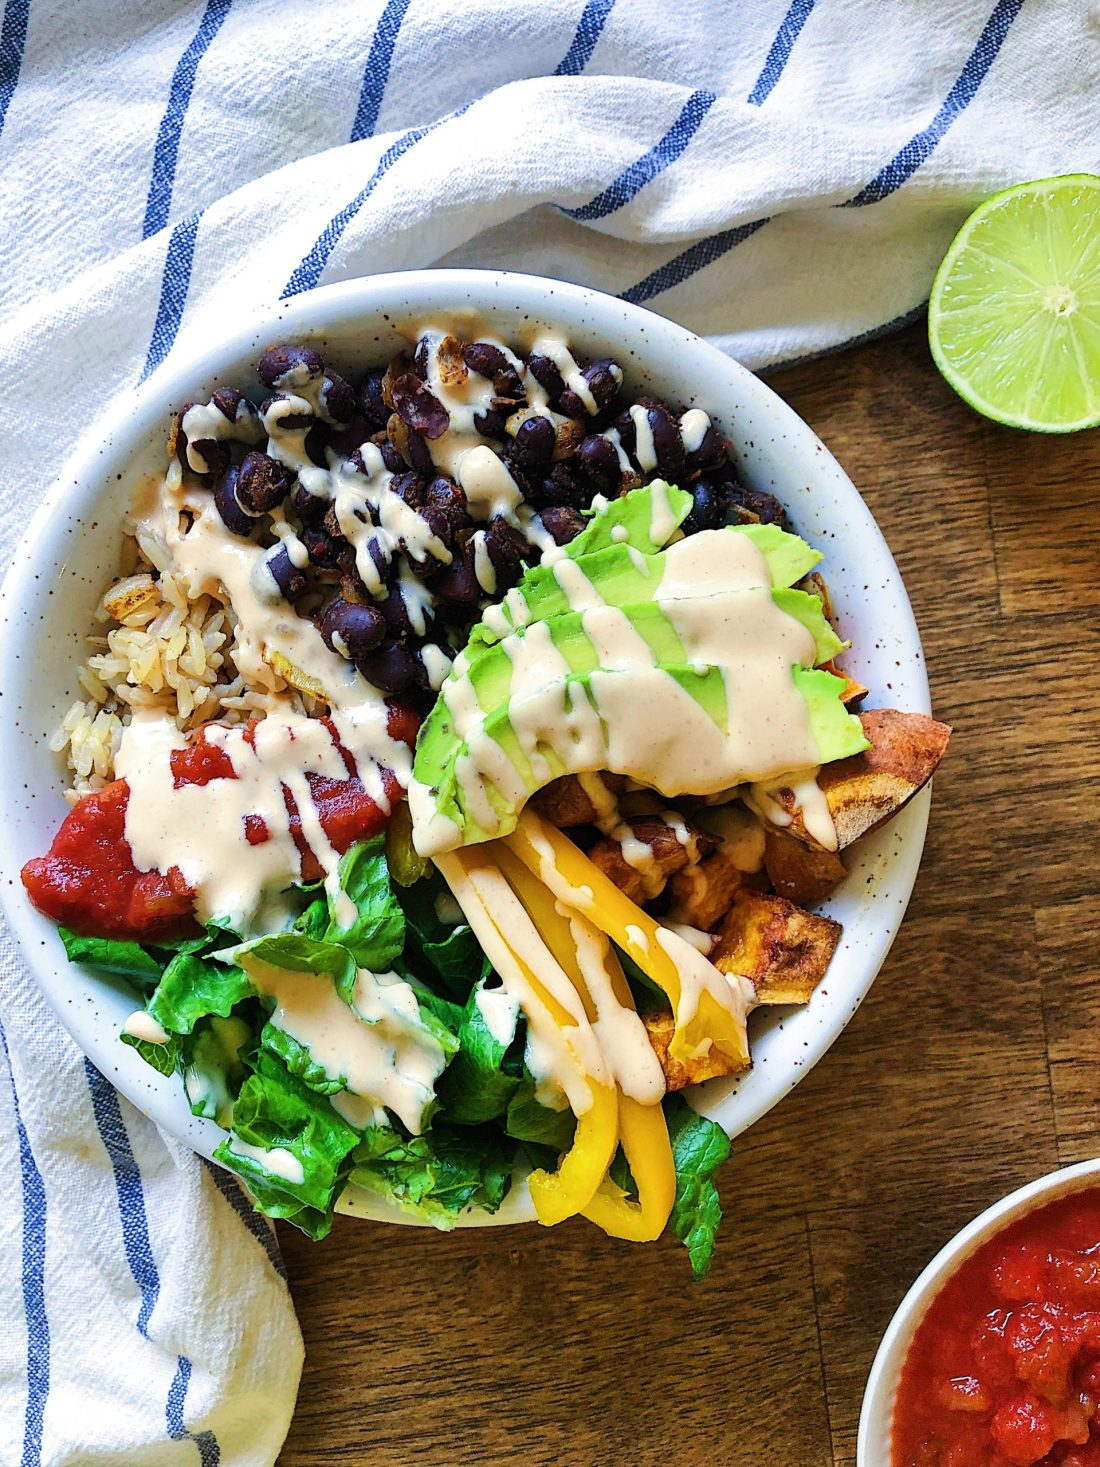 Vegan burrito bowl with spicy lime sauce